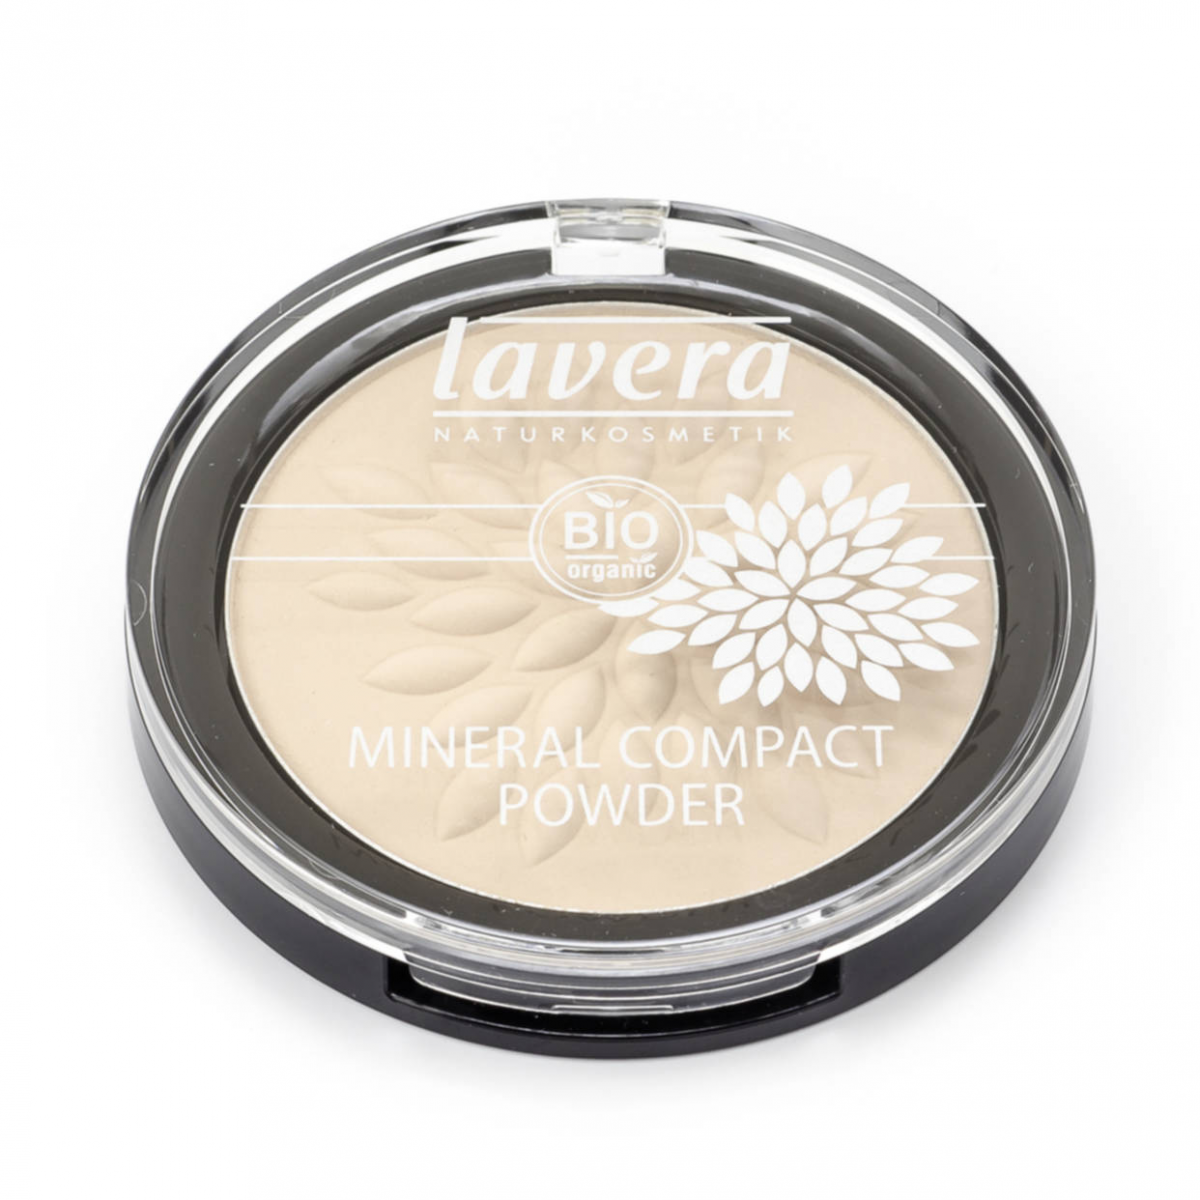 Mineral Compact Powder -Ivory 01- Dose 7 g - Lavera